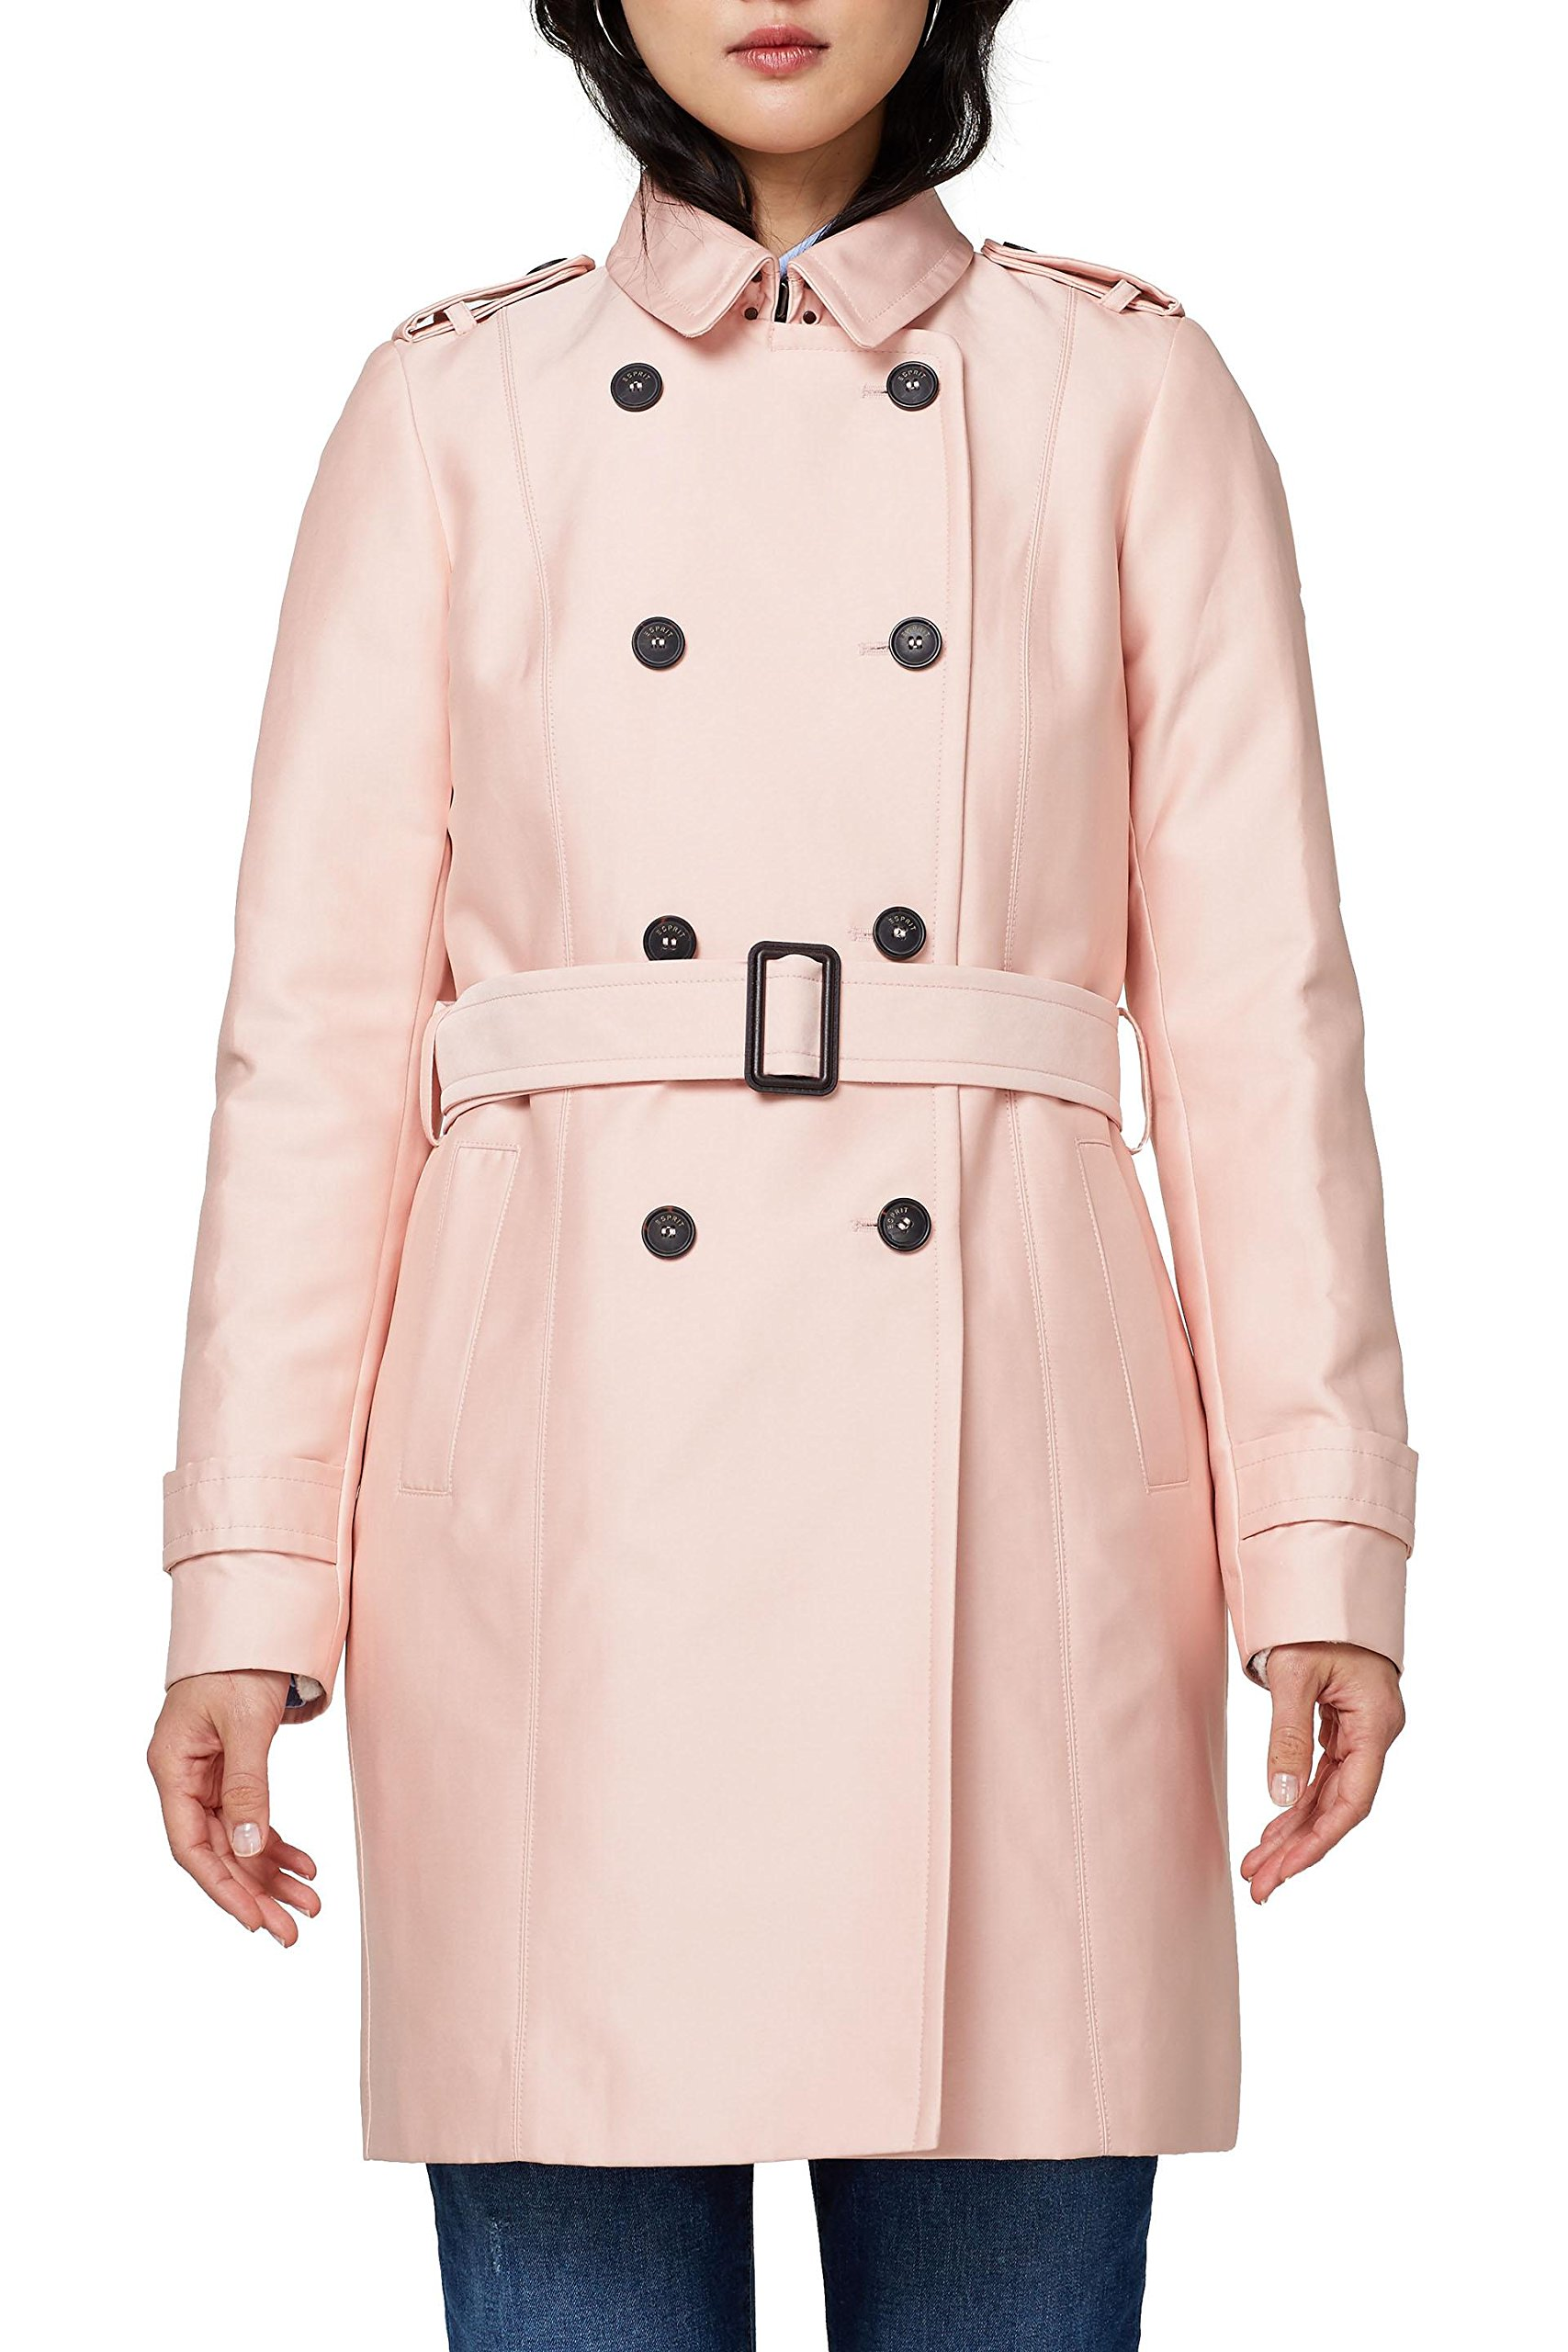 Fabricant38Femme 69540taille Collection Esprit 018eo1g016 ManteauRosepastel Pink OikXZuPT